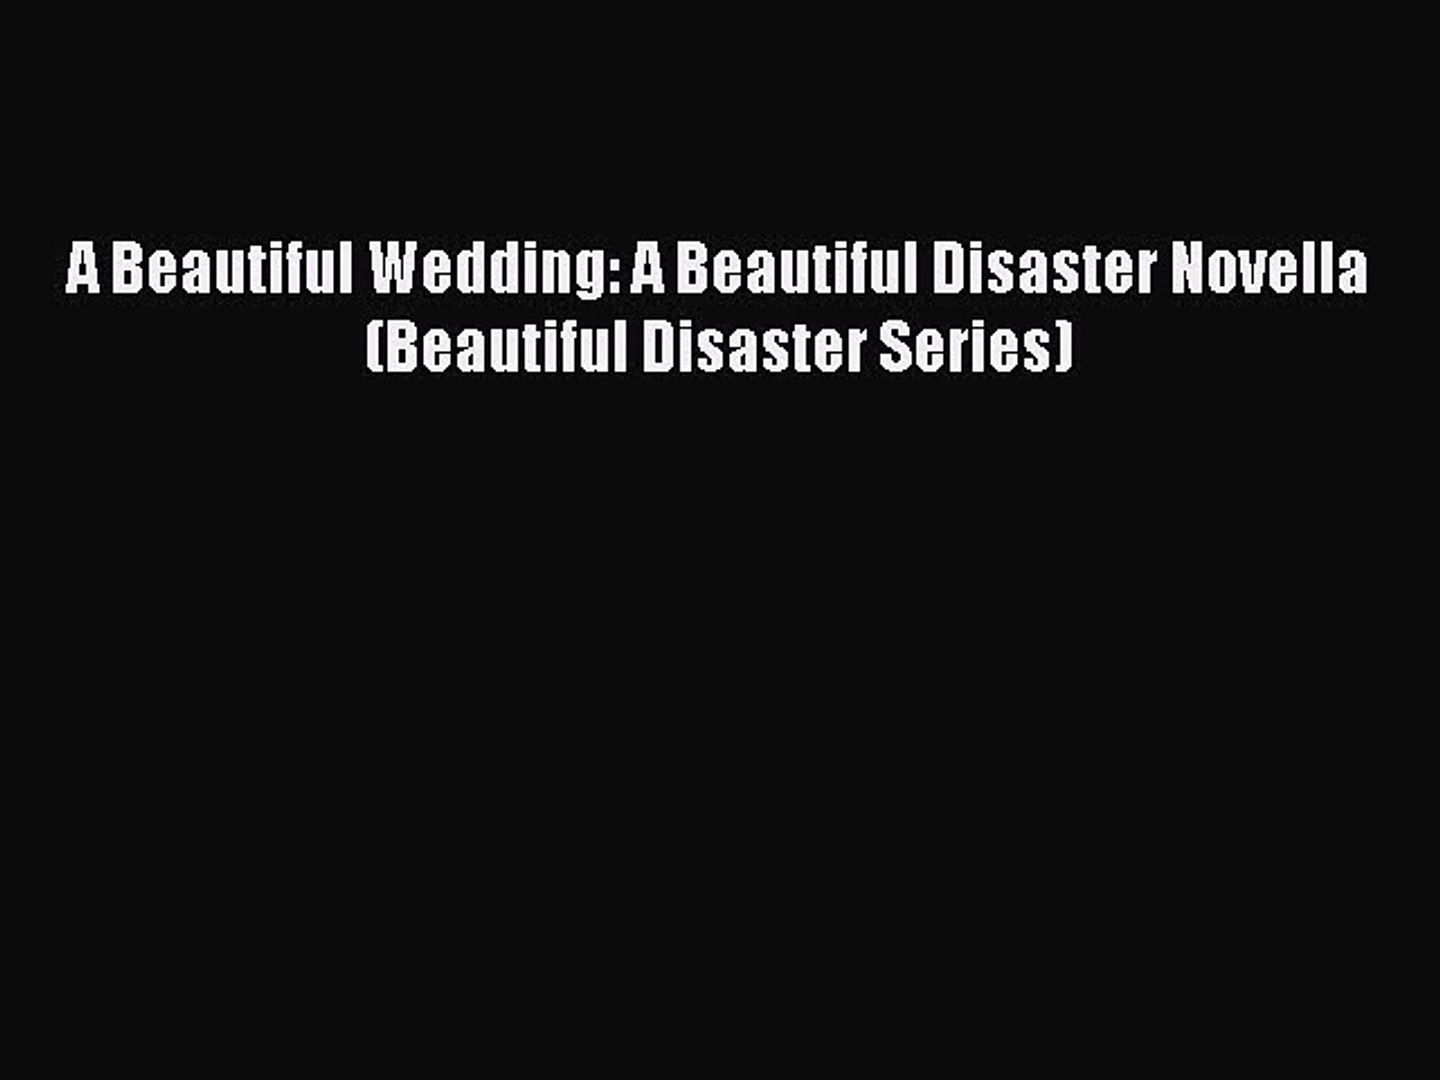 [PDF] A Beautiful Wedding: A Beautiful Disaster Novella (Beautiful Disaster Series)  Read Online